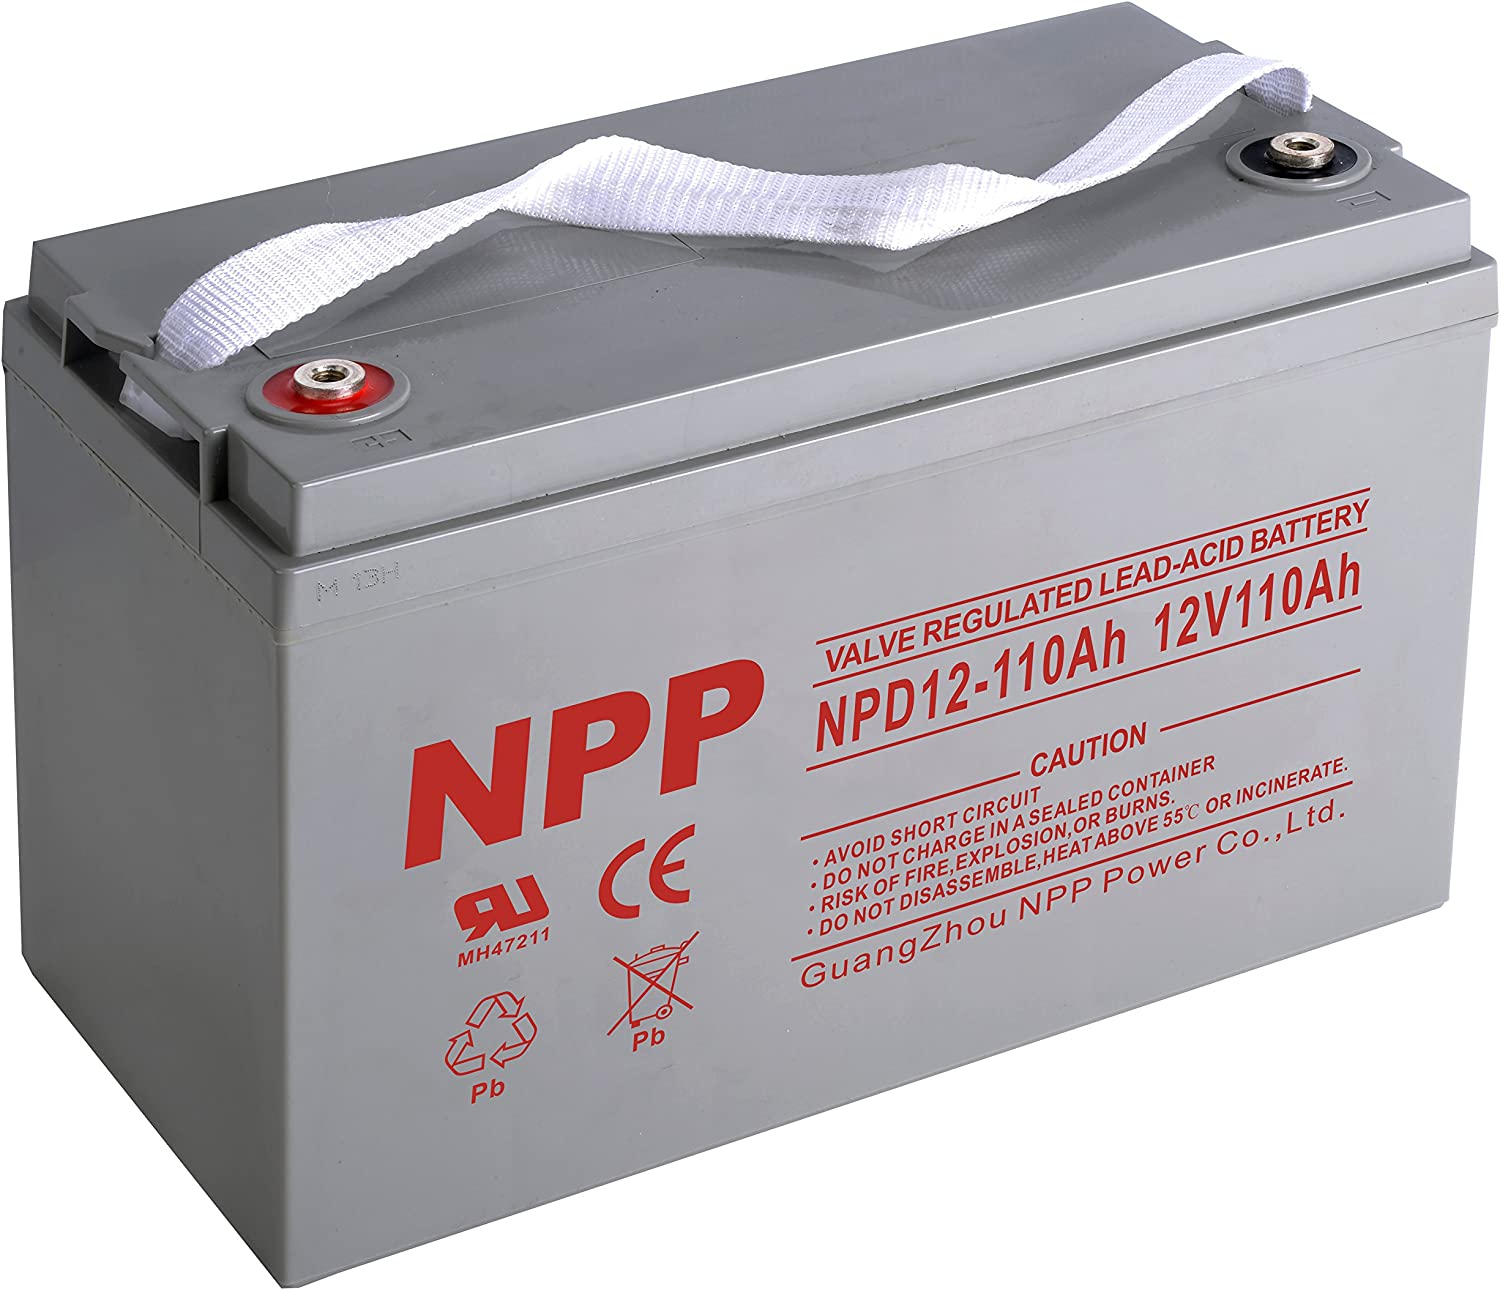 NPP NPD12-110Ah 12V 110Ah 12Volt Oakland Mall Cycle Rechargeable AGM sold out VRL Deep